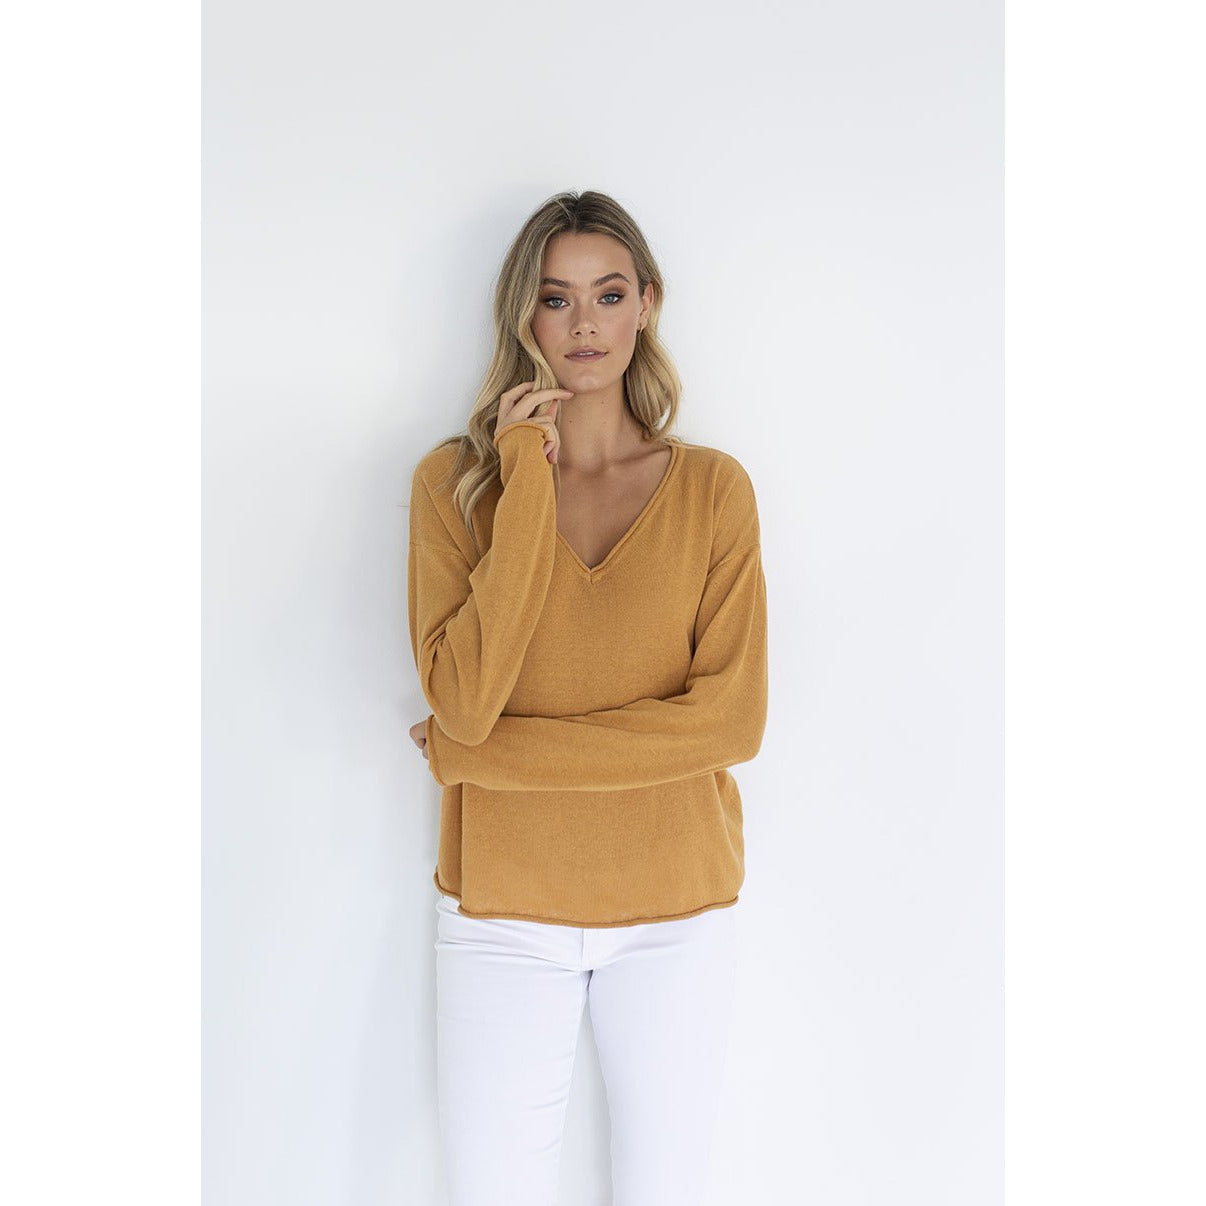 Humidity Haven Top in Camel